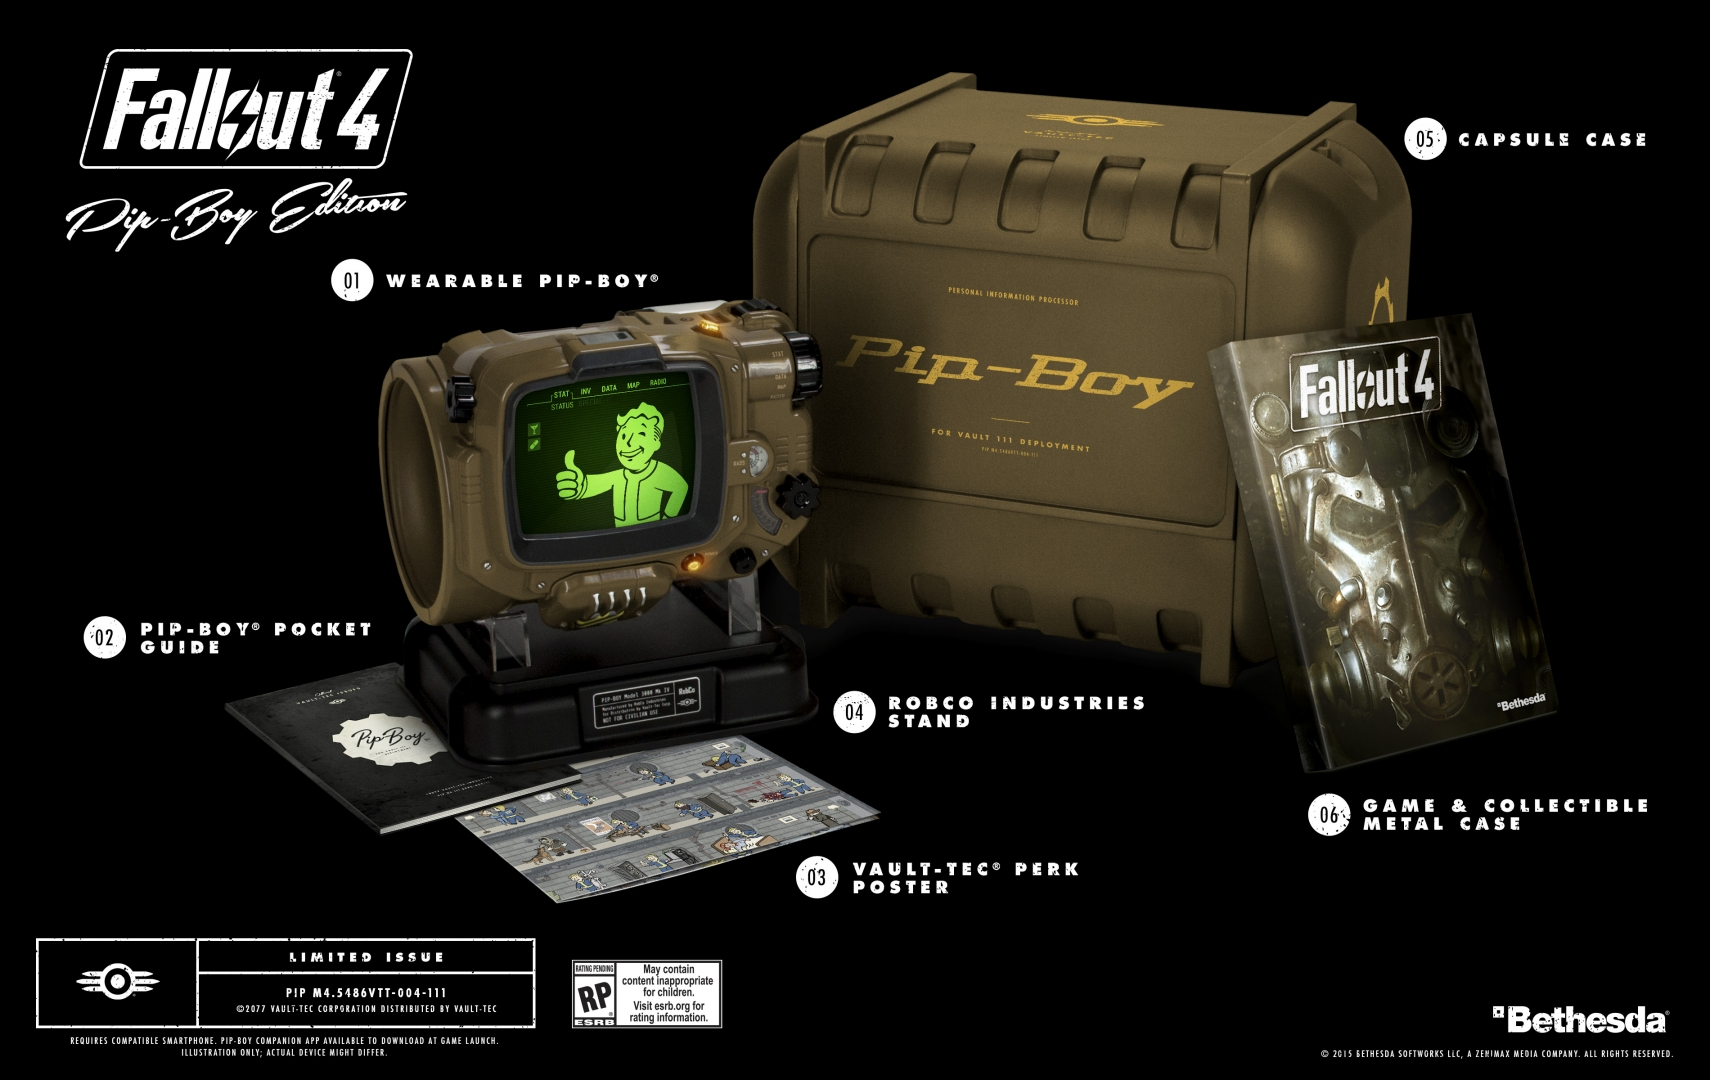 Fallout 4 pipboy edition available for pre-order at amazon for $120.